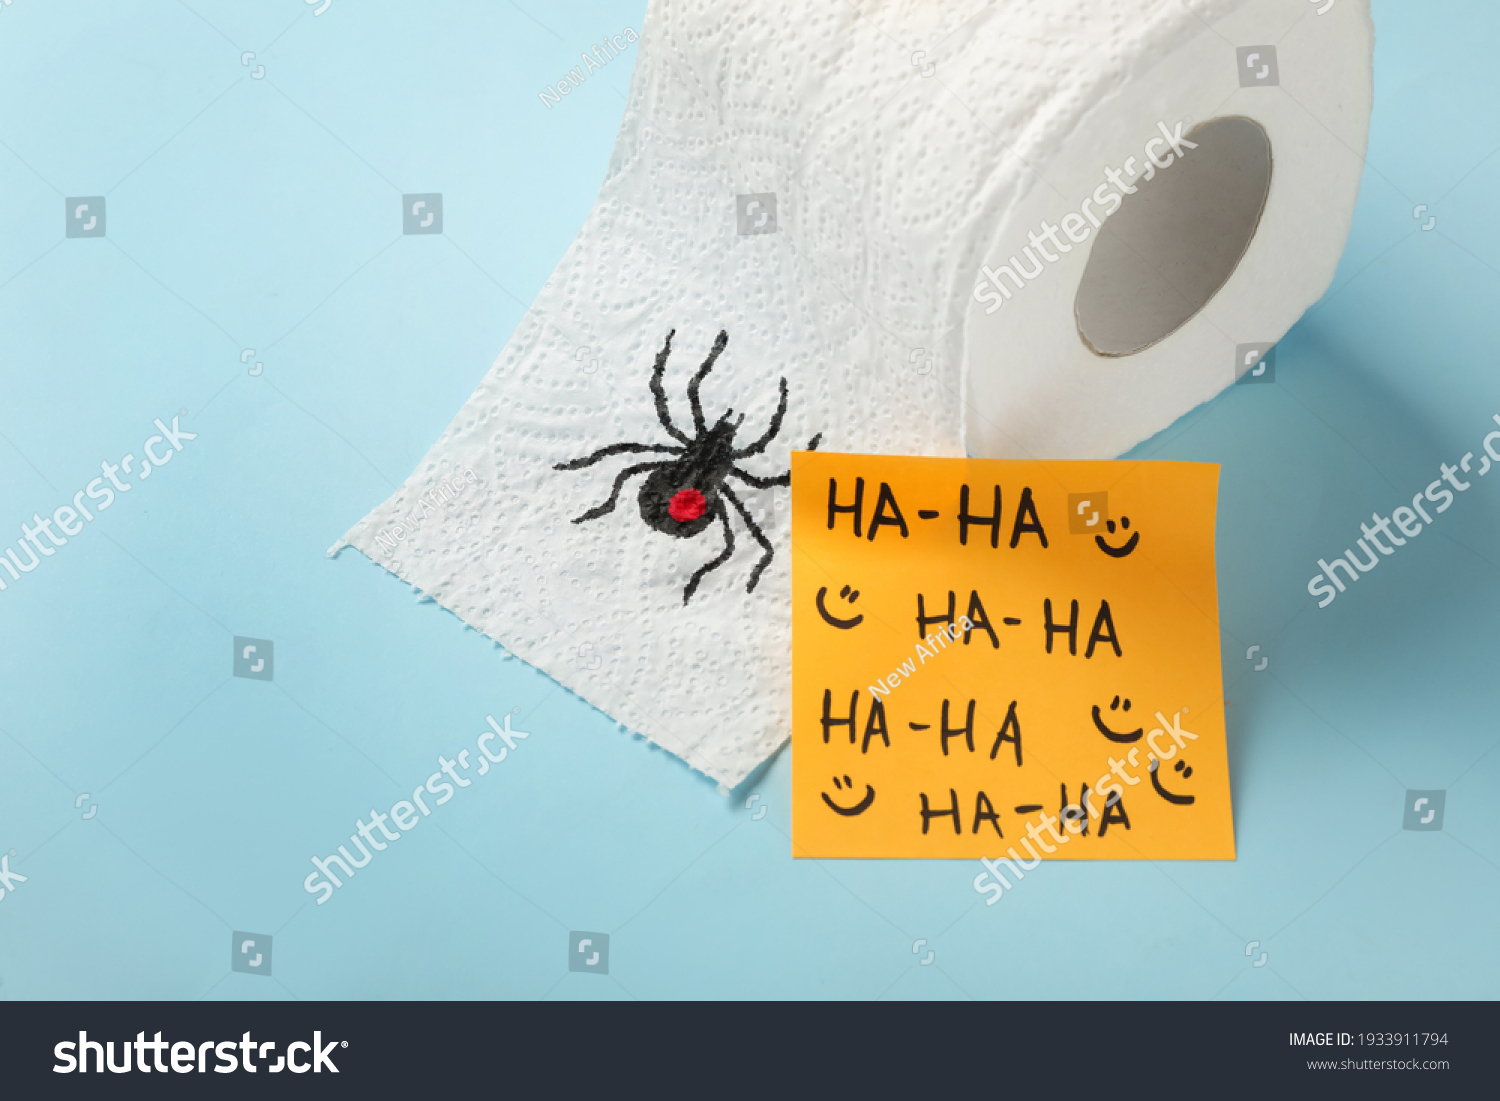 Toilet paper roll with drawn spider and words Ha-Ha  on light blue background. Celebrating April Fool's Day #1933911794